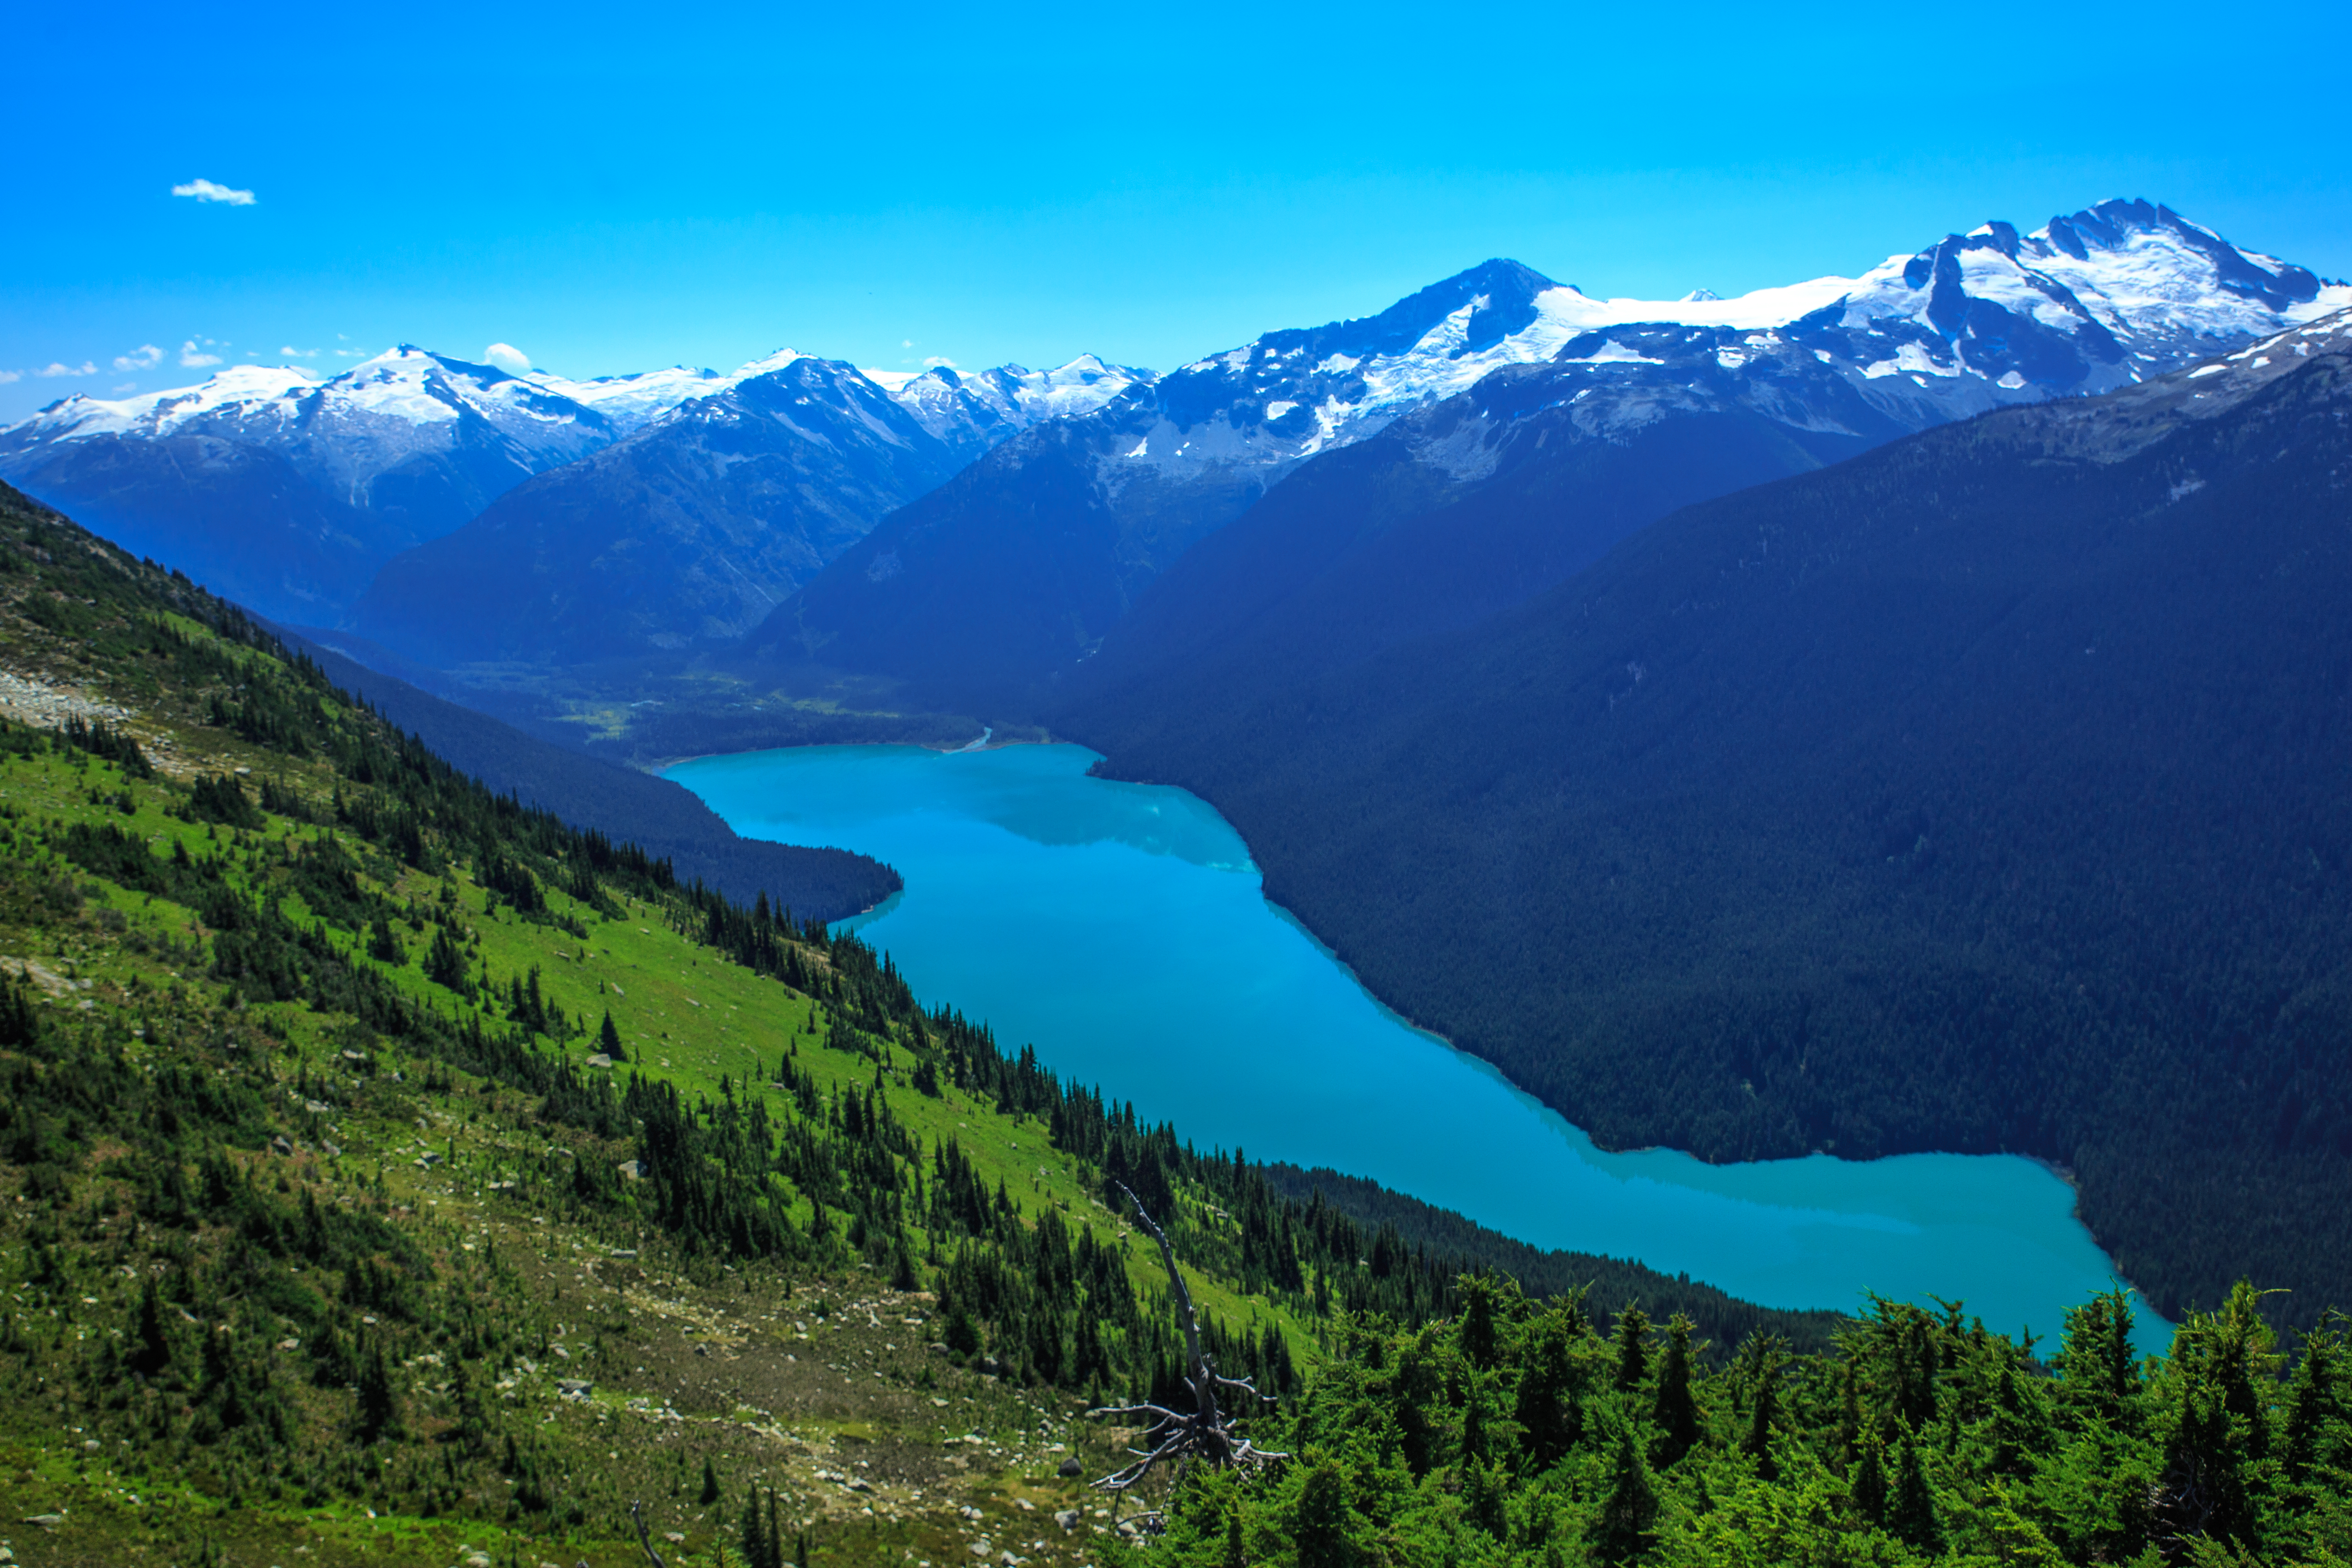 File:A day at the top of Whistler Mtn - Cheakamus Lake from the